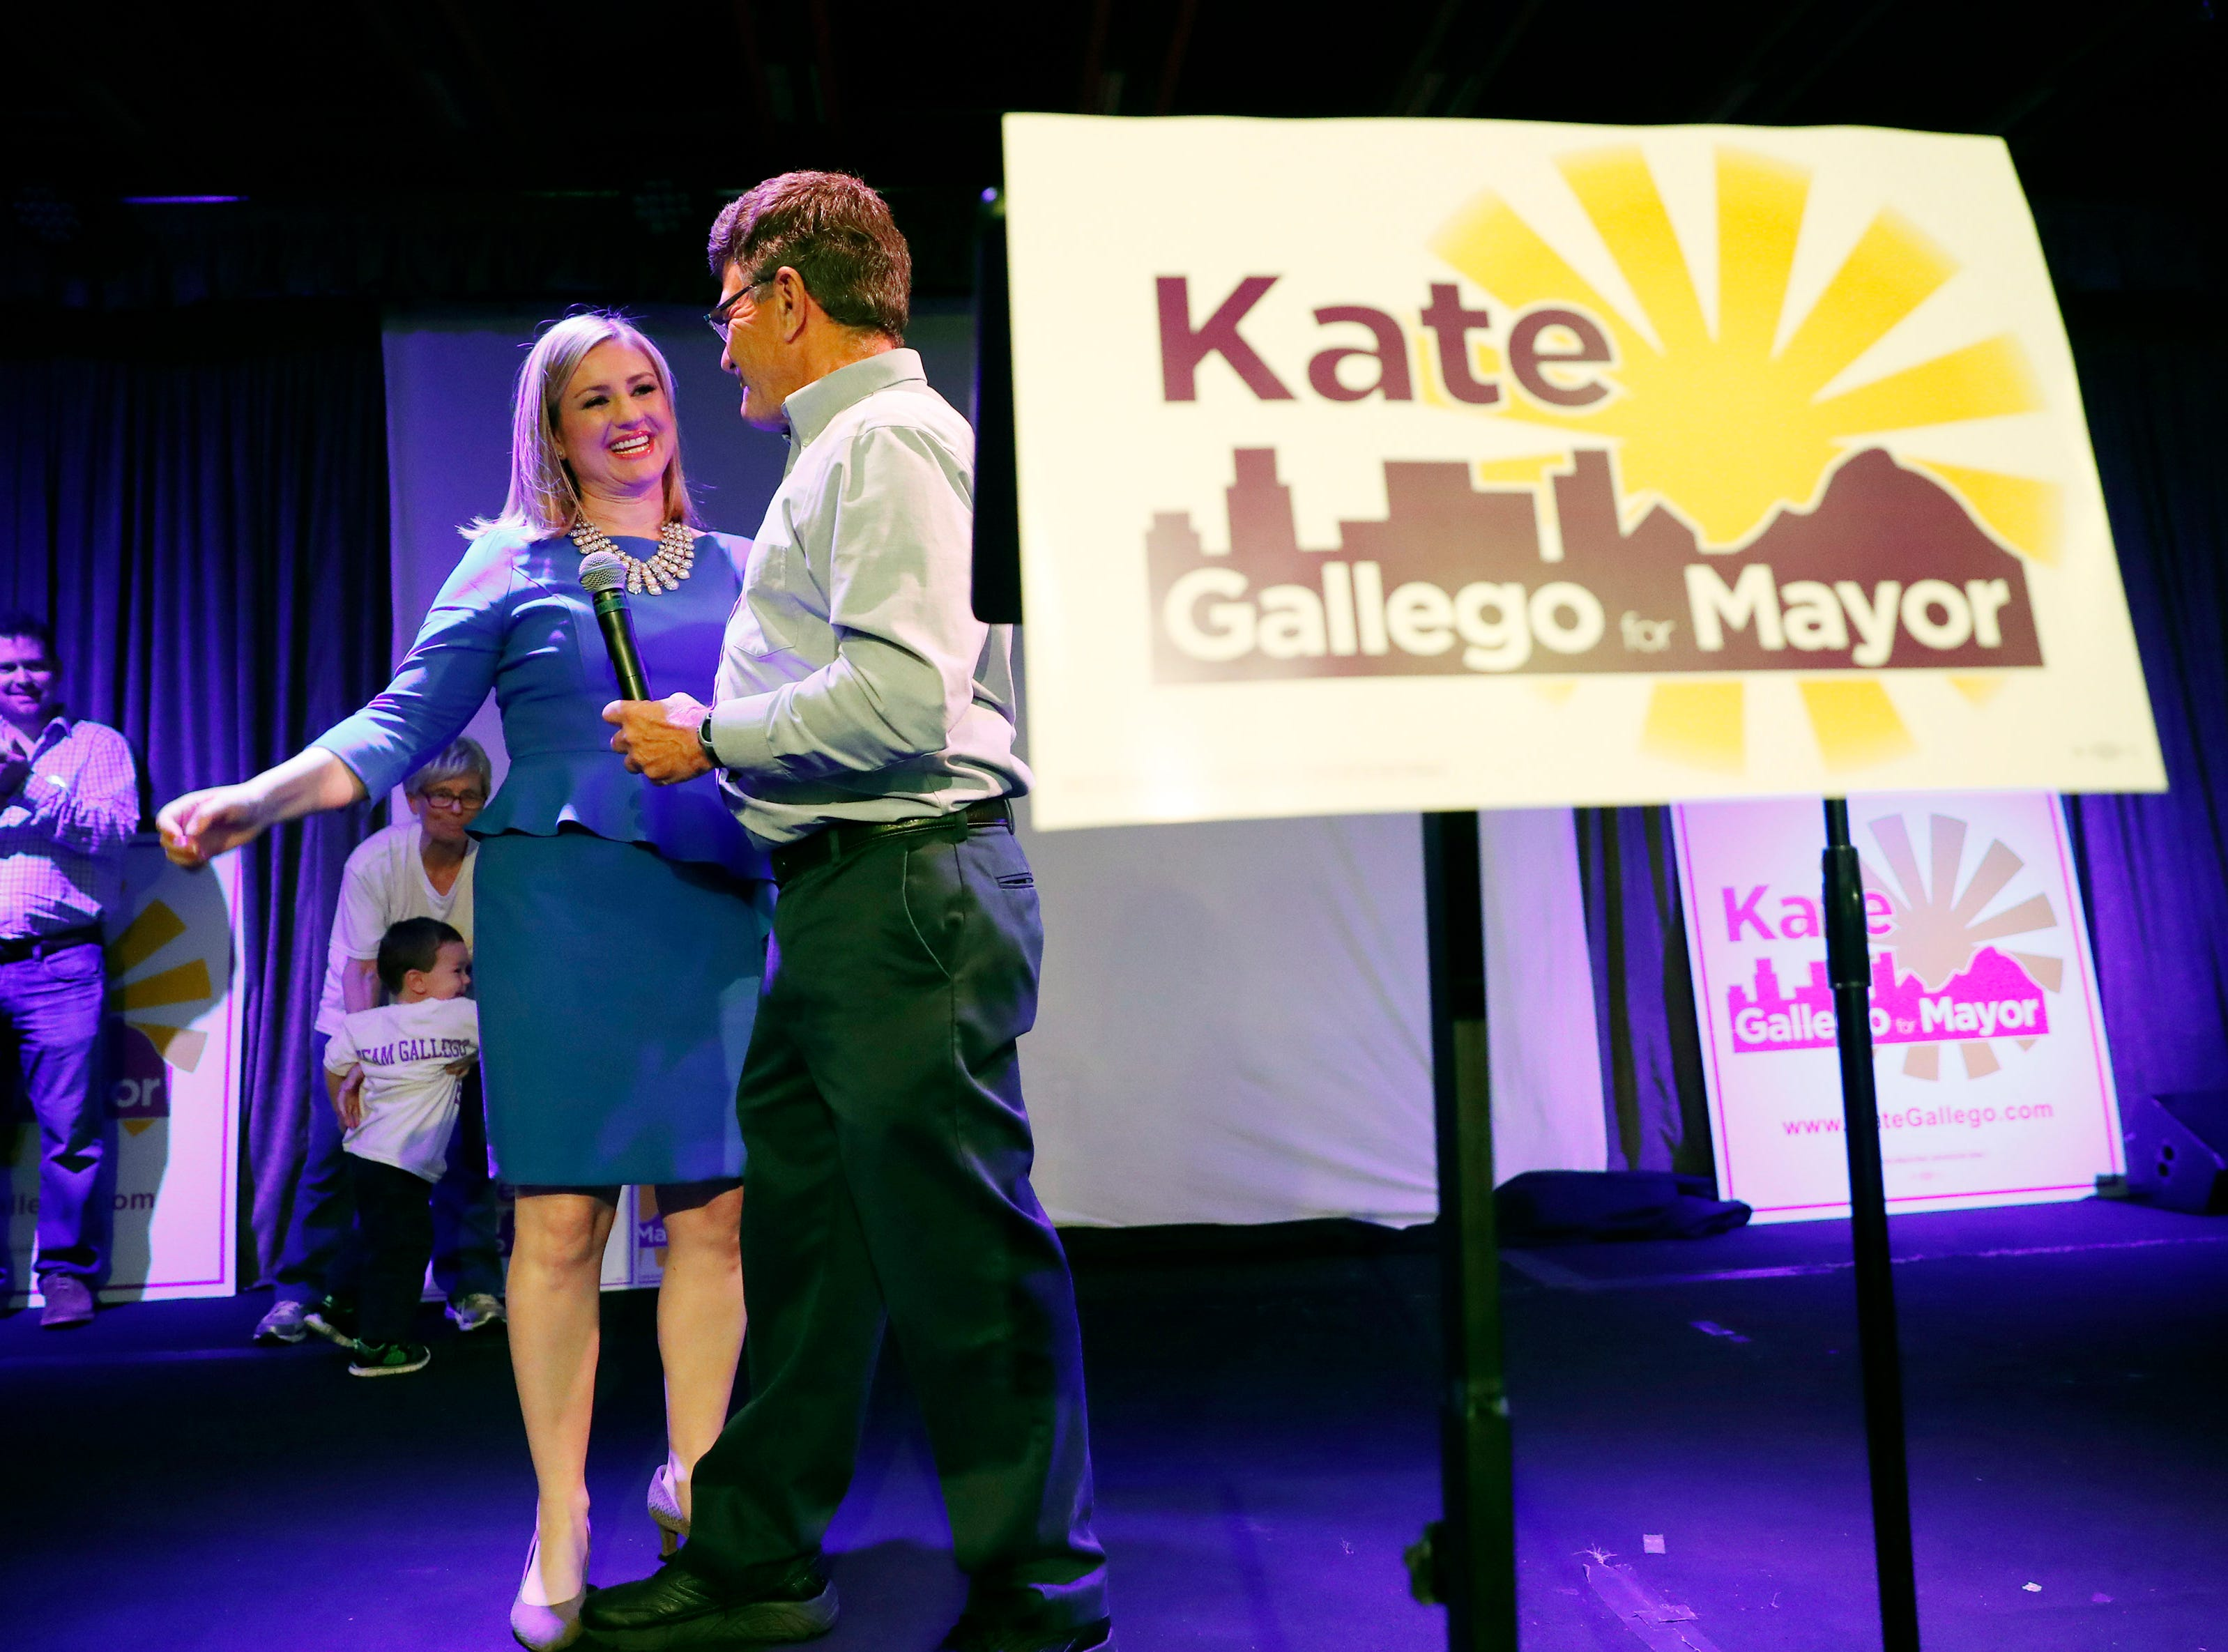 Democrat Kate Gallego hugs her father, Jim Widland, at an election-night party at Crescent Ballroom in Phoenix on March 12, 2019.